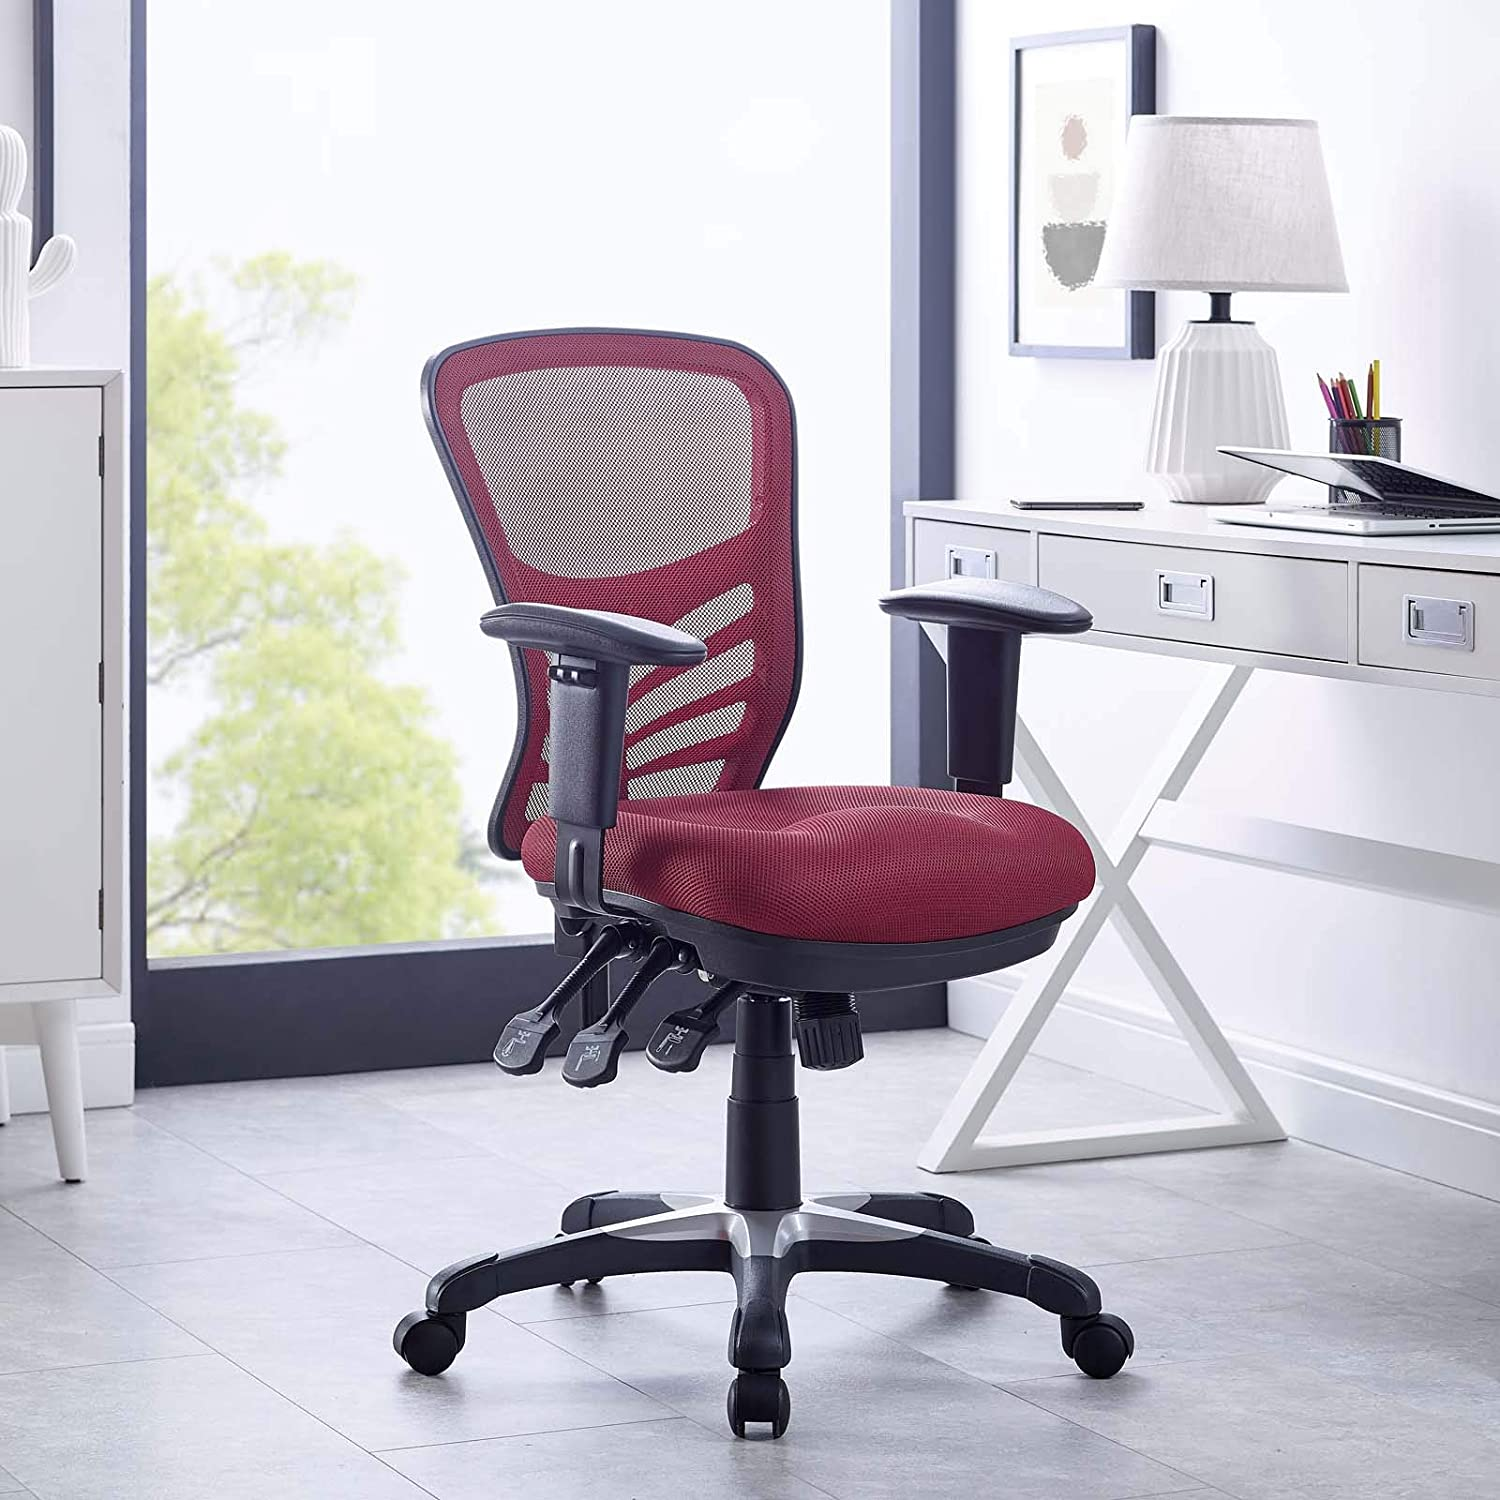 Amazon Com Modway Articulate Ergonomic Mesh Office Chair In Red Furniture Decor